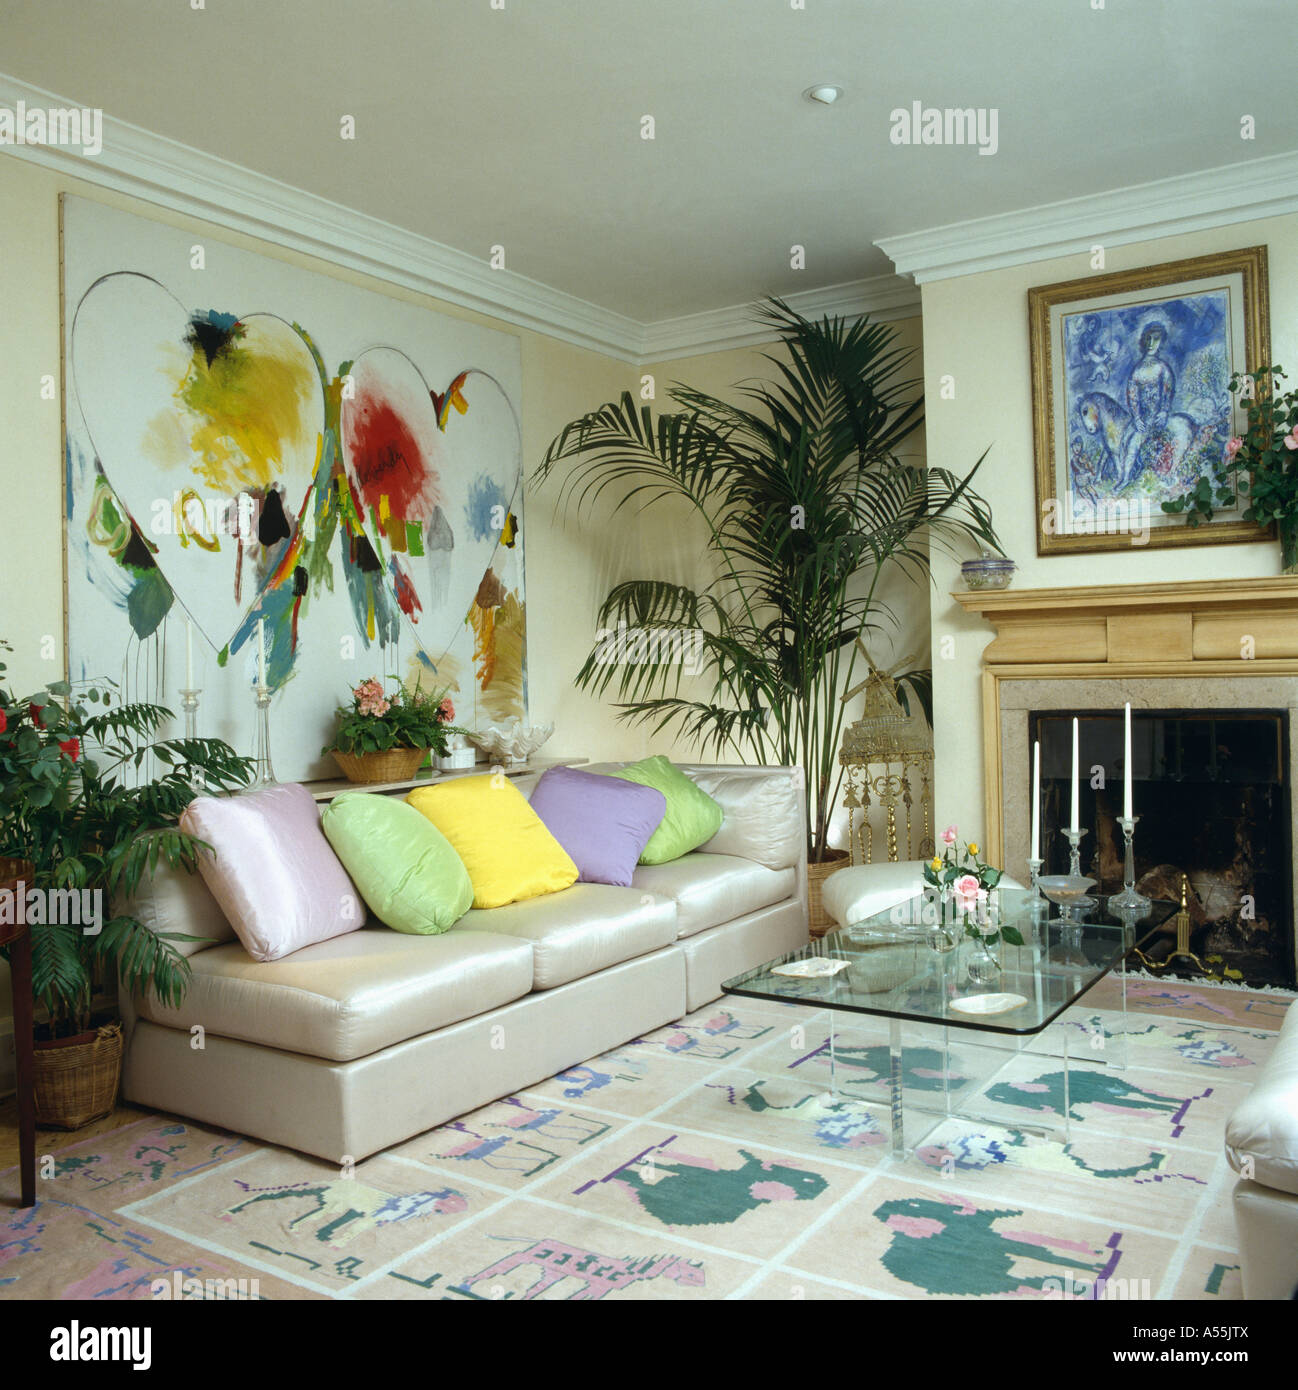 sofa paintings abstract forest blackburn large painting above cream silk with pastel